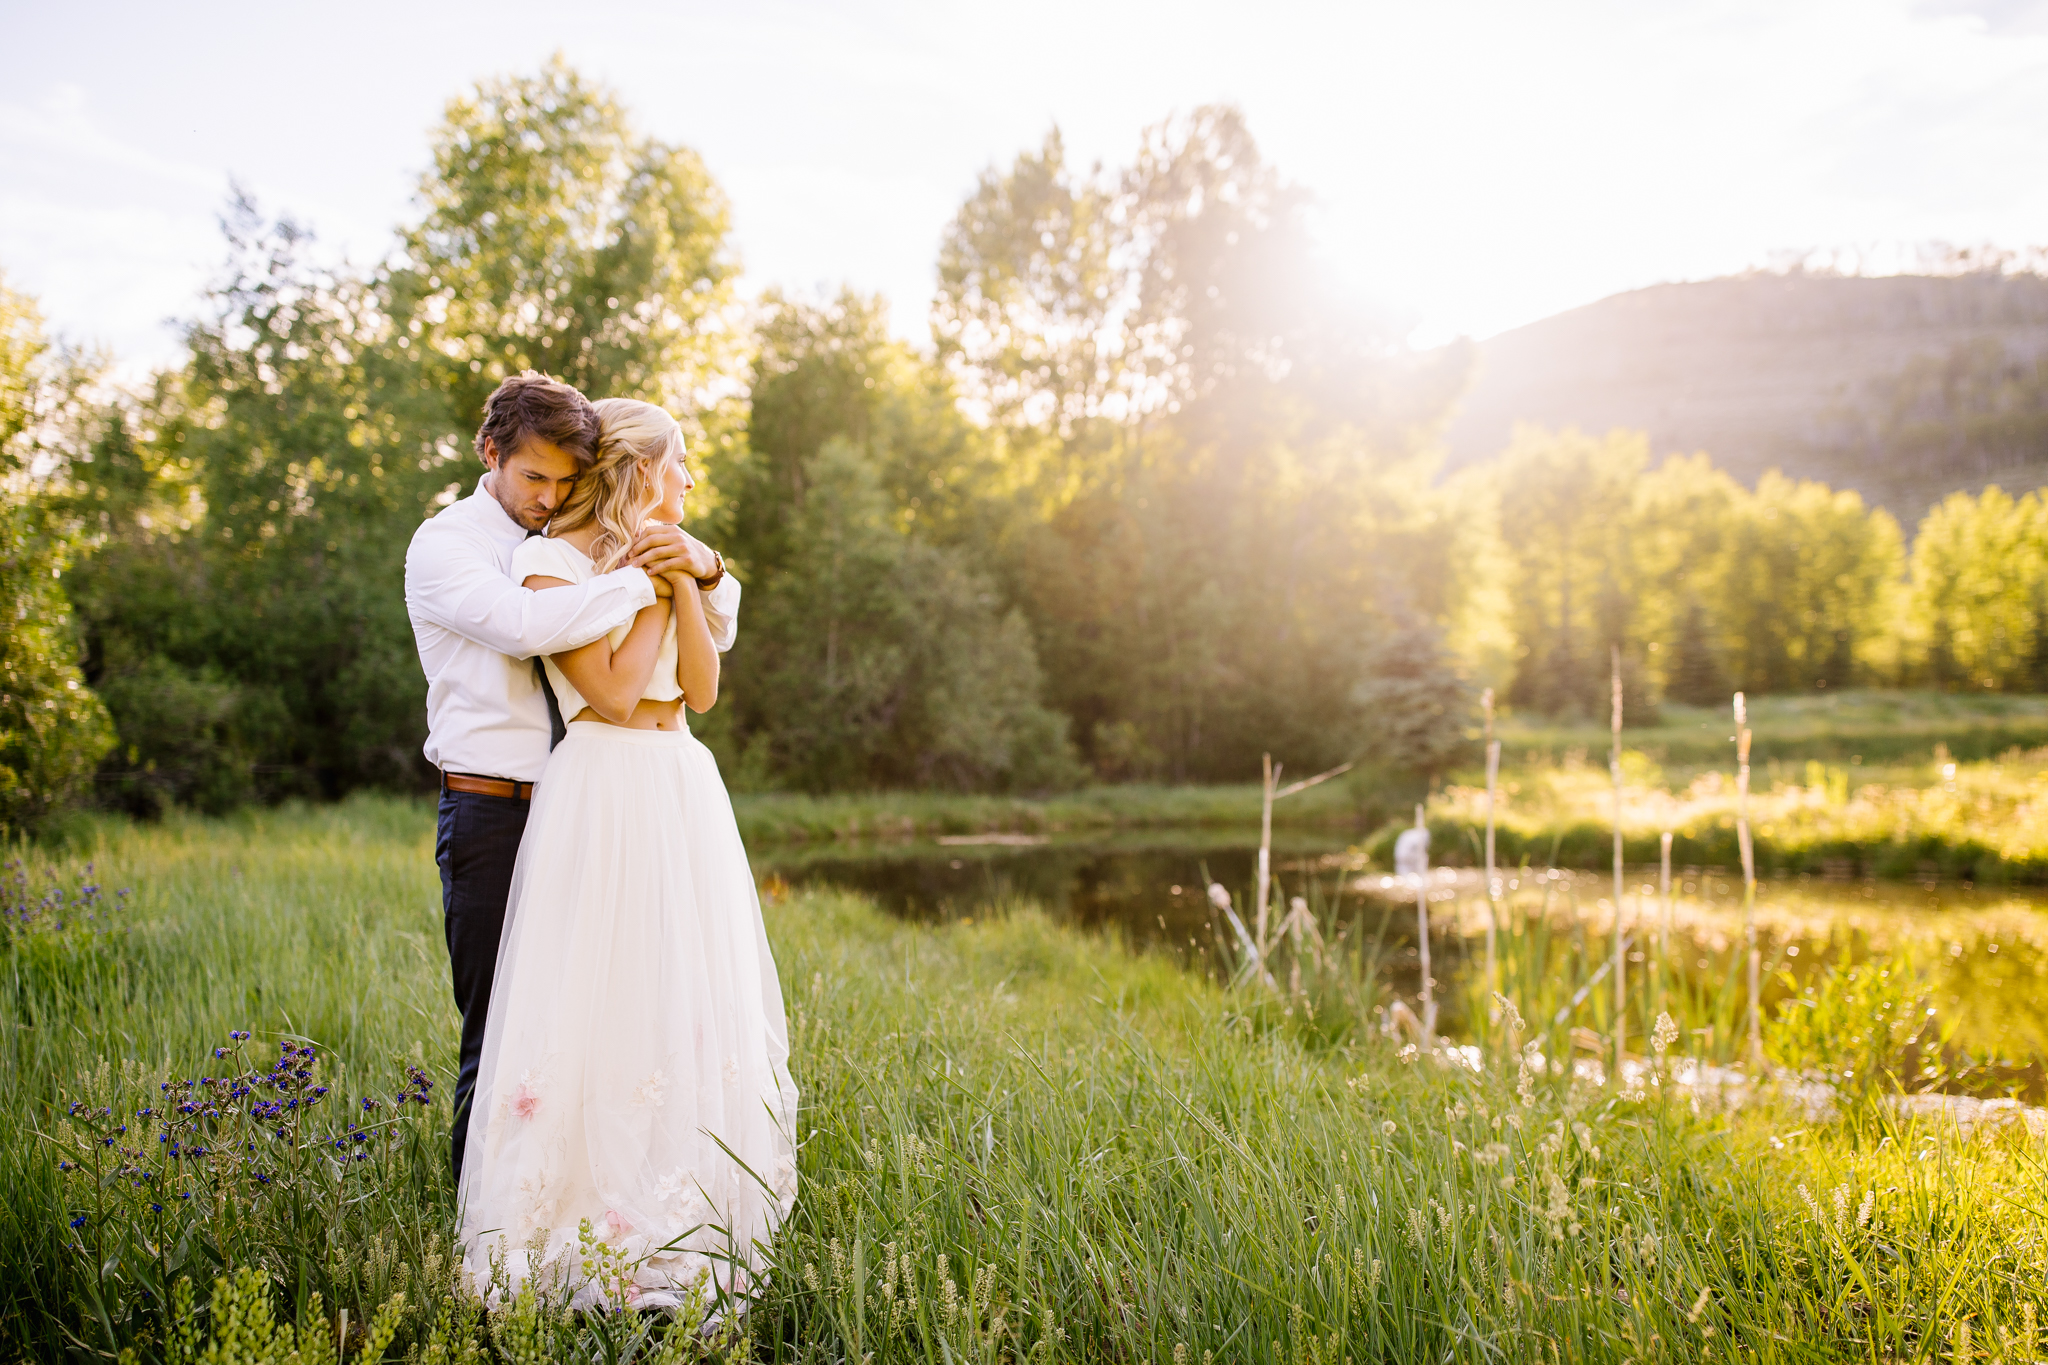 Lizzie-B-Imagery-Utah-Wedding-Photographer-Salt-Lake-City-Park-City-Oakley-1WEB5.jpg